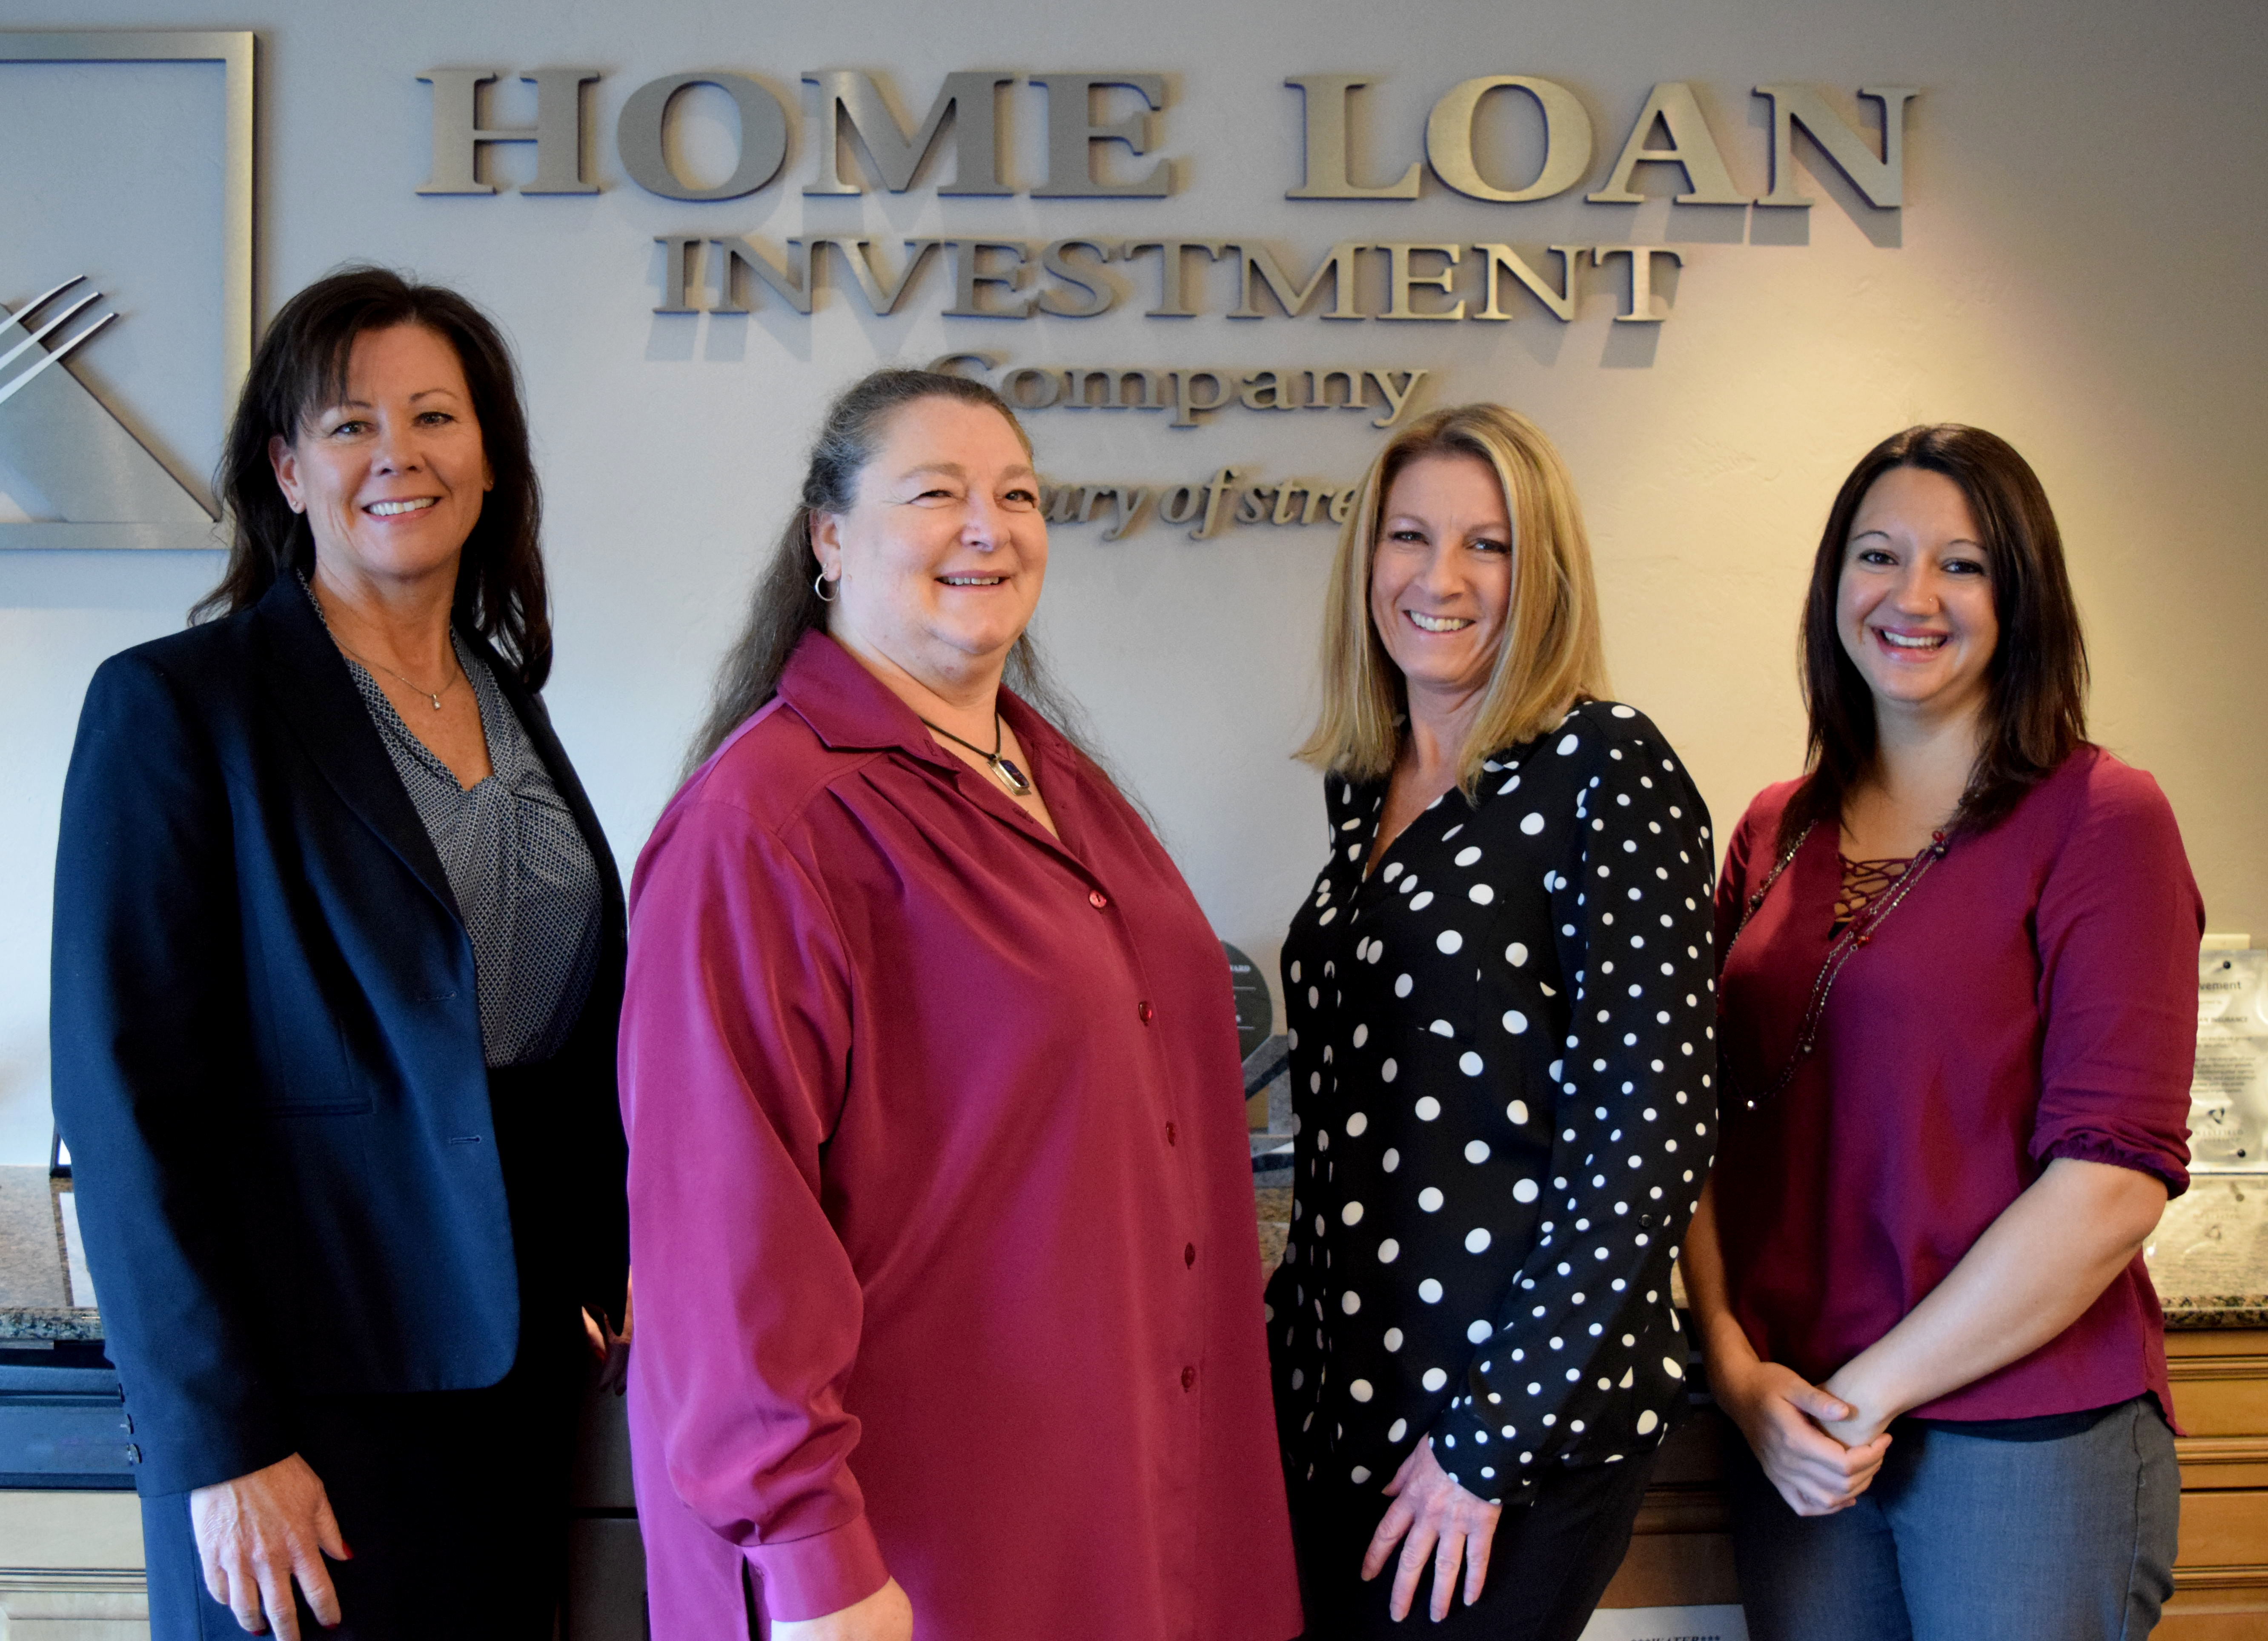 The Home Loan Insurance Benefits Department